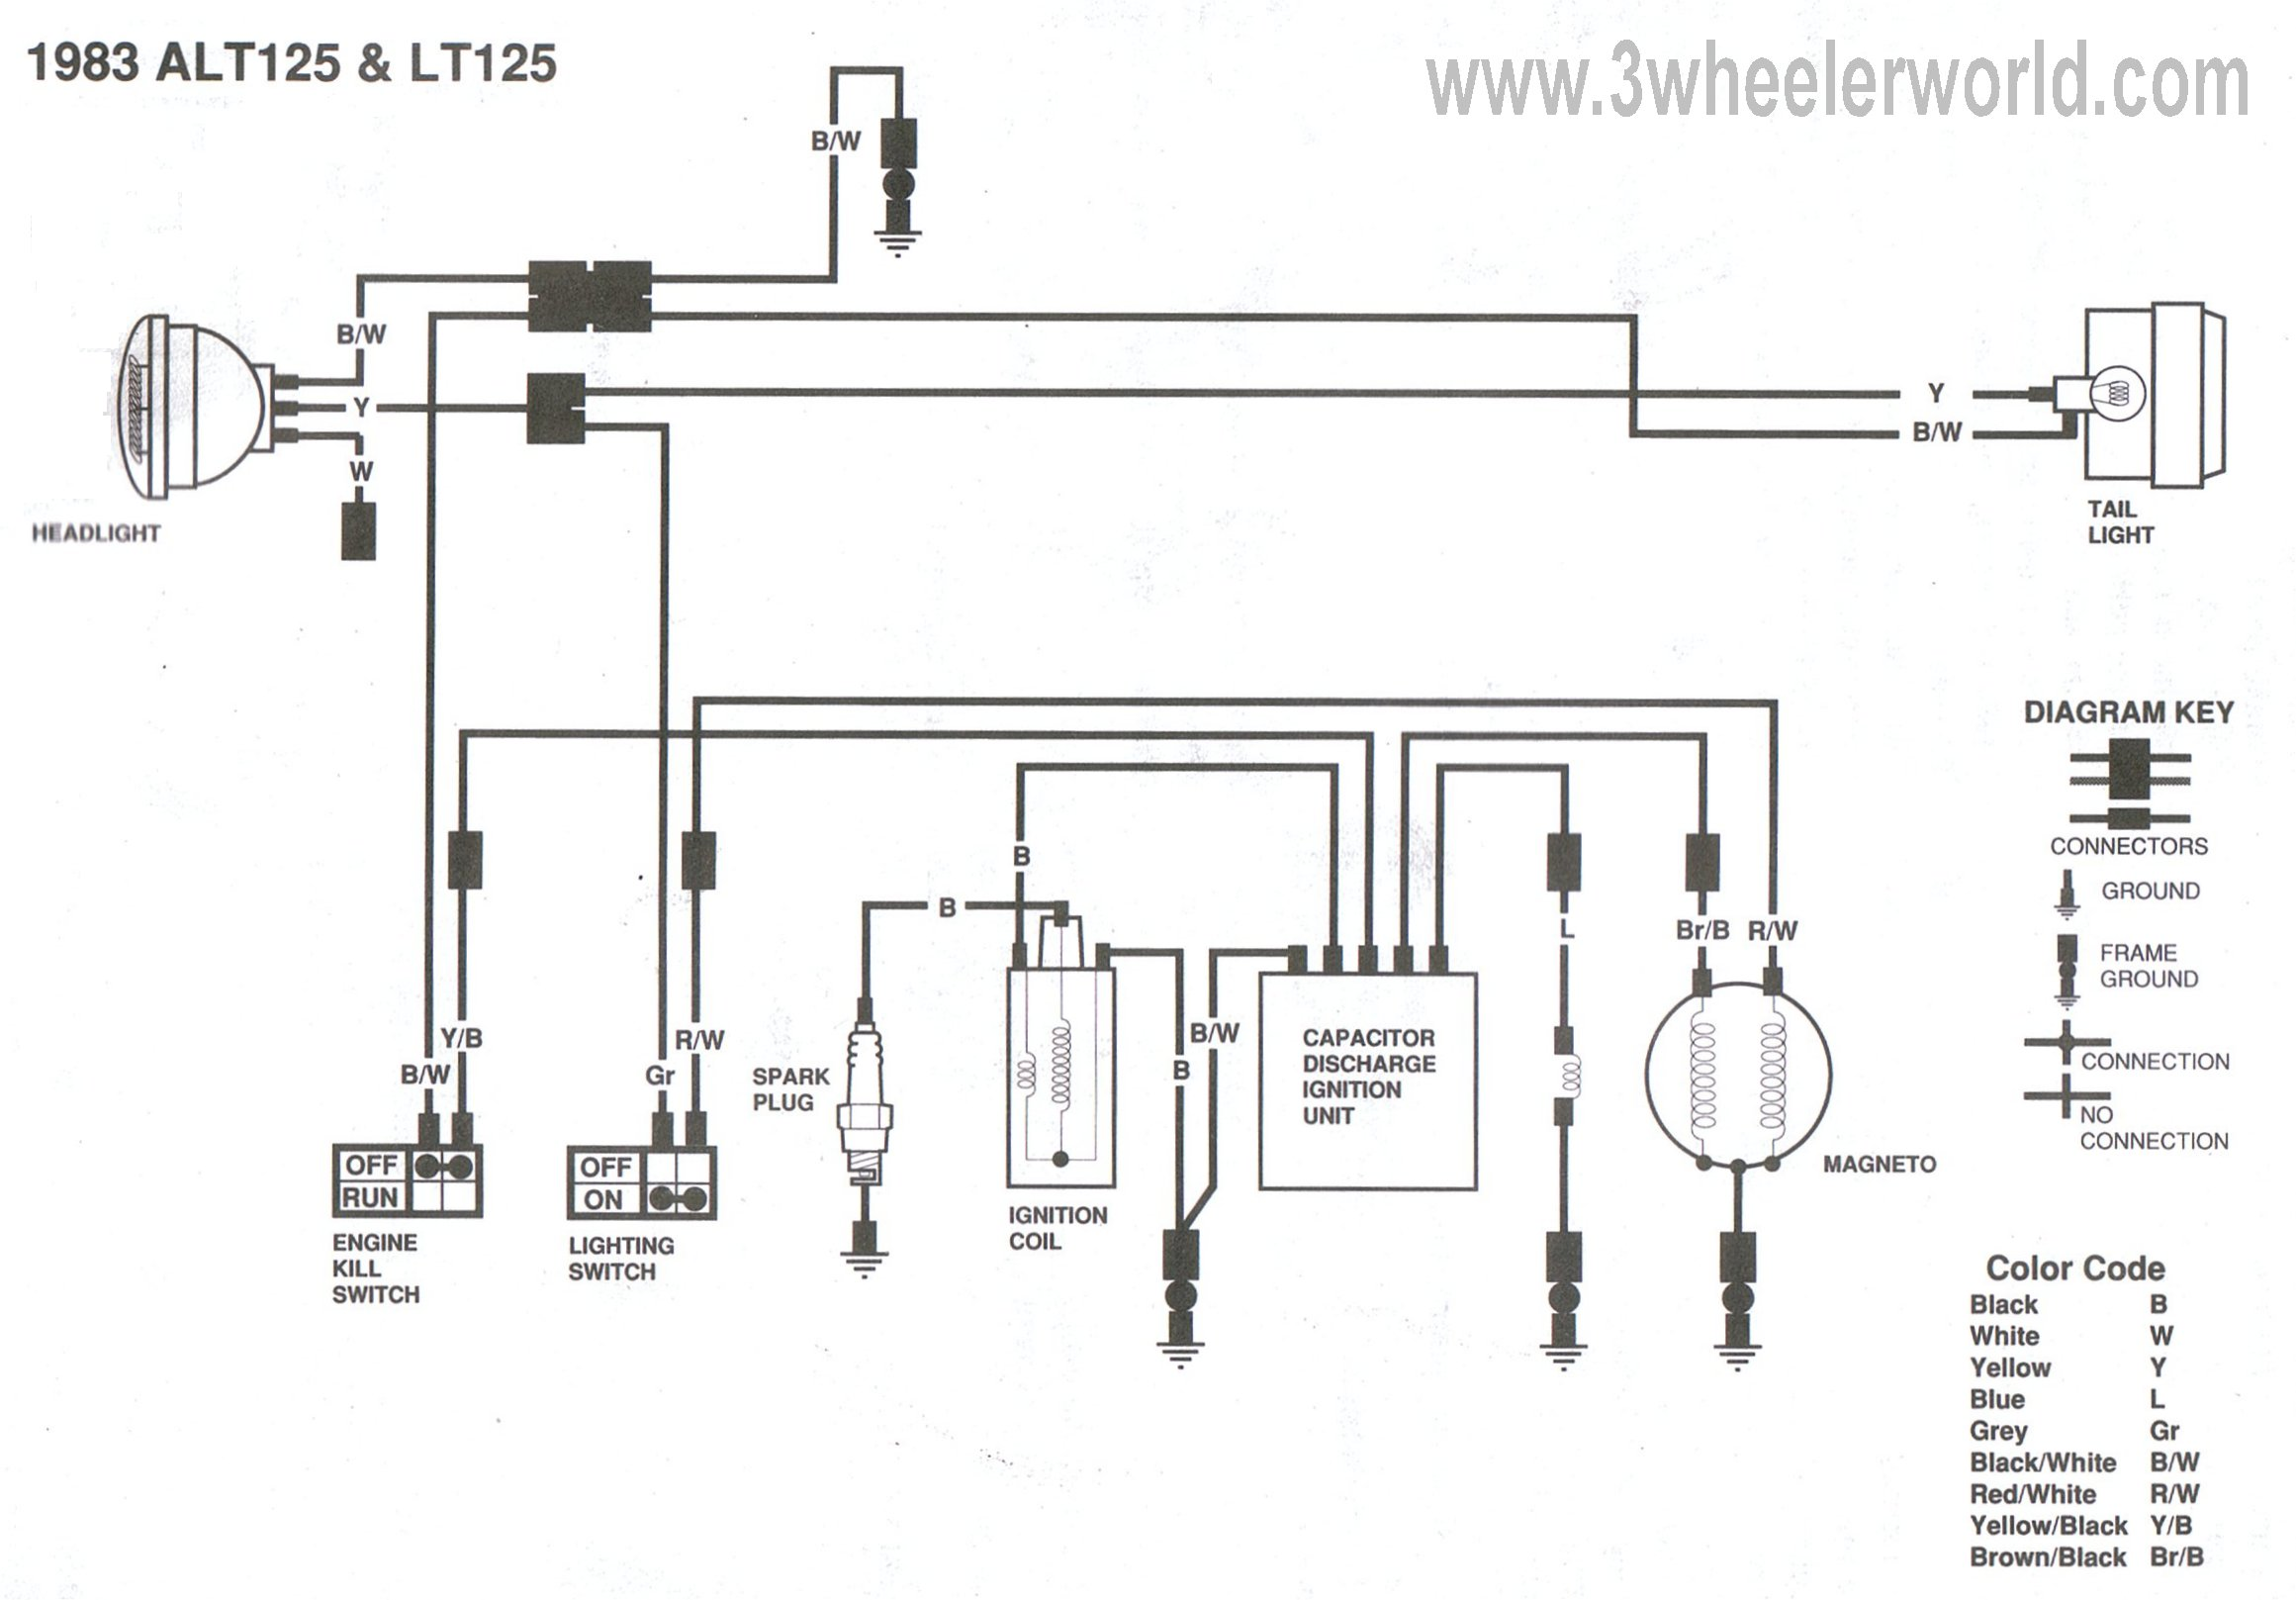 3 WHeeLeR WoRLD Tech Help Suzuki Wiring Diagrams